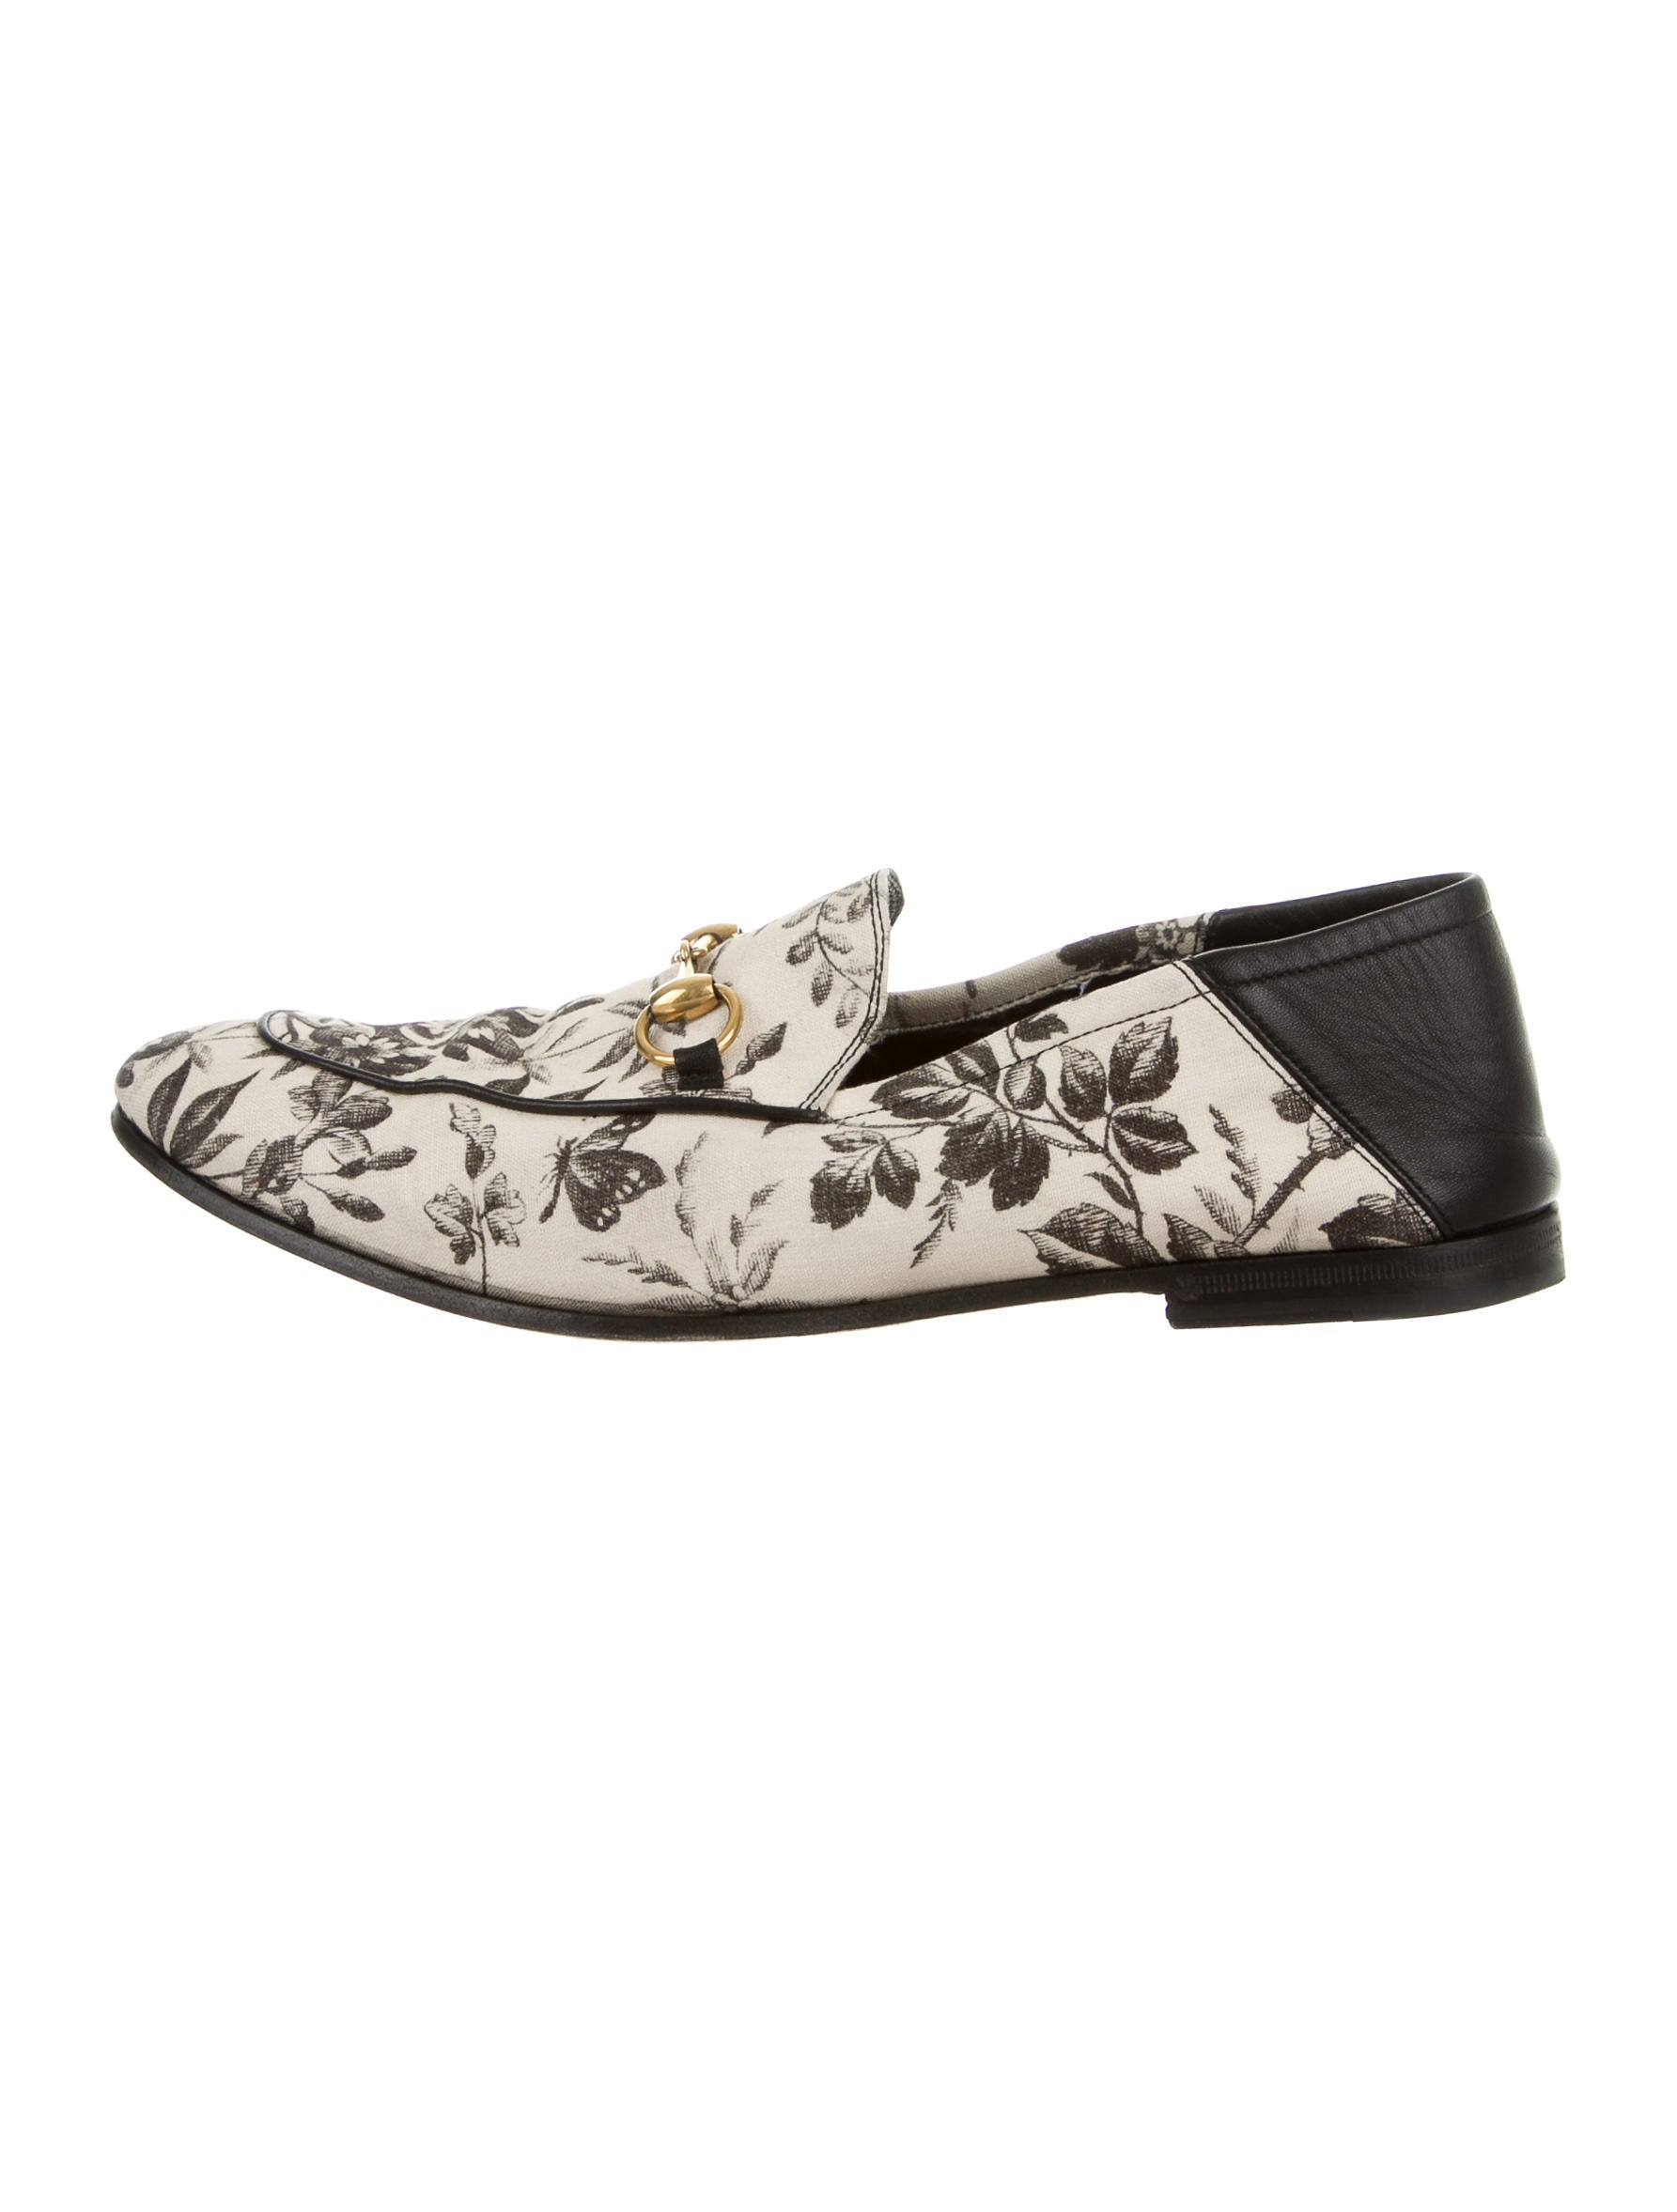 gucci floral print horsebit loafers - shoes